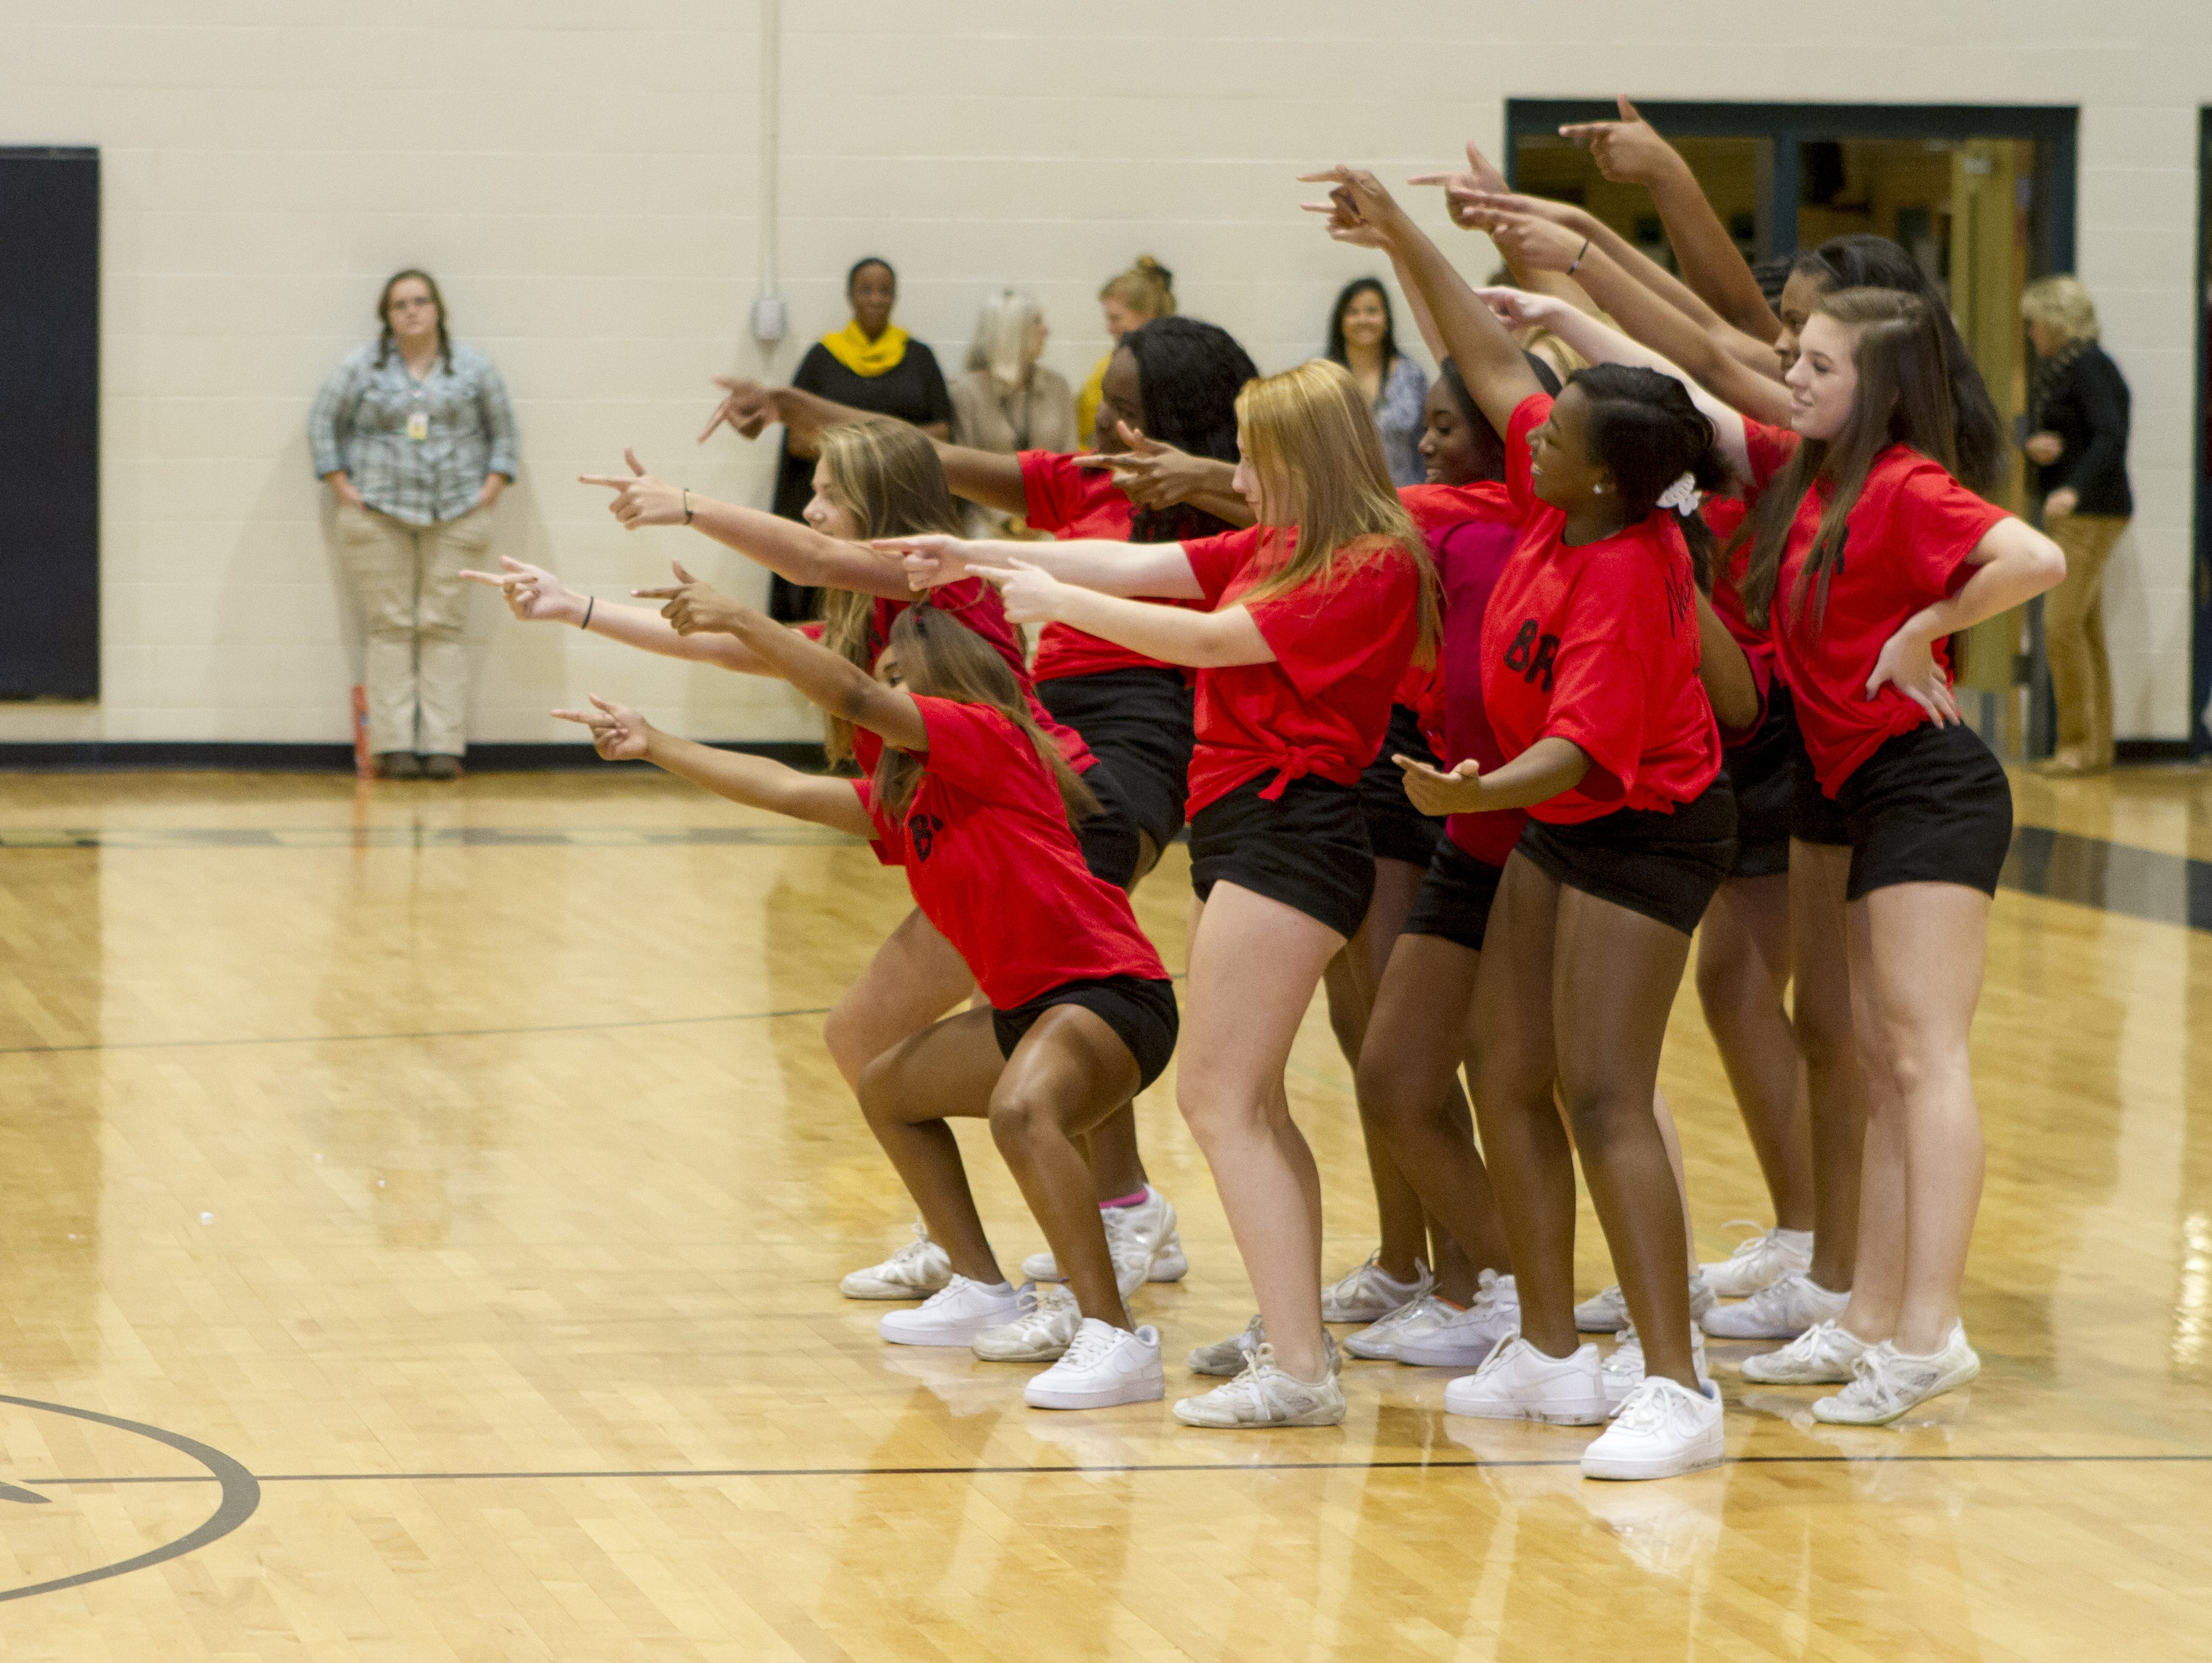 The competition in the dance-off fight back. The Greer High School cheerleaders performed a skit at its pep rally leading up to the Blue Ridge High School football game.